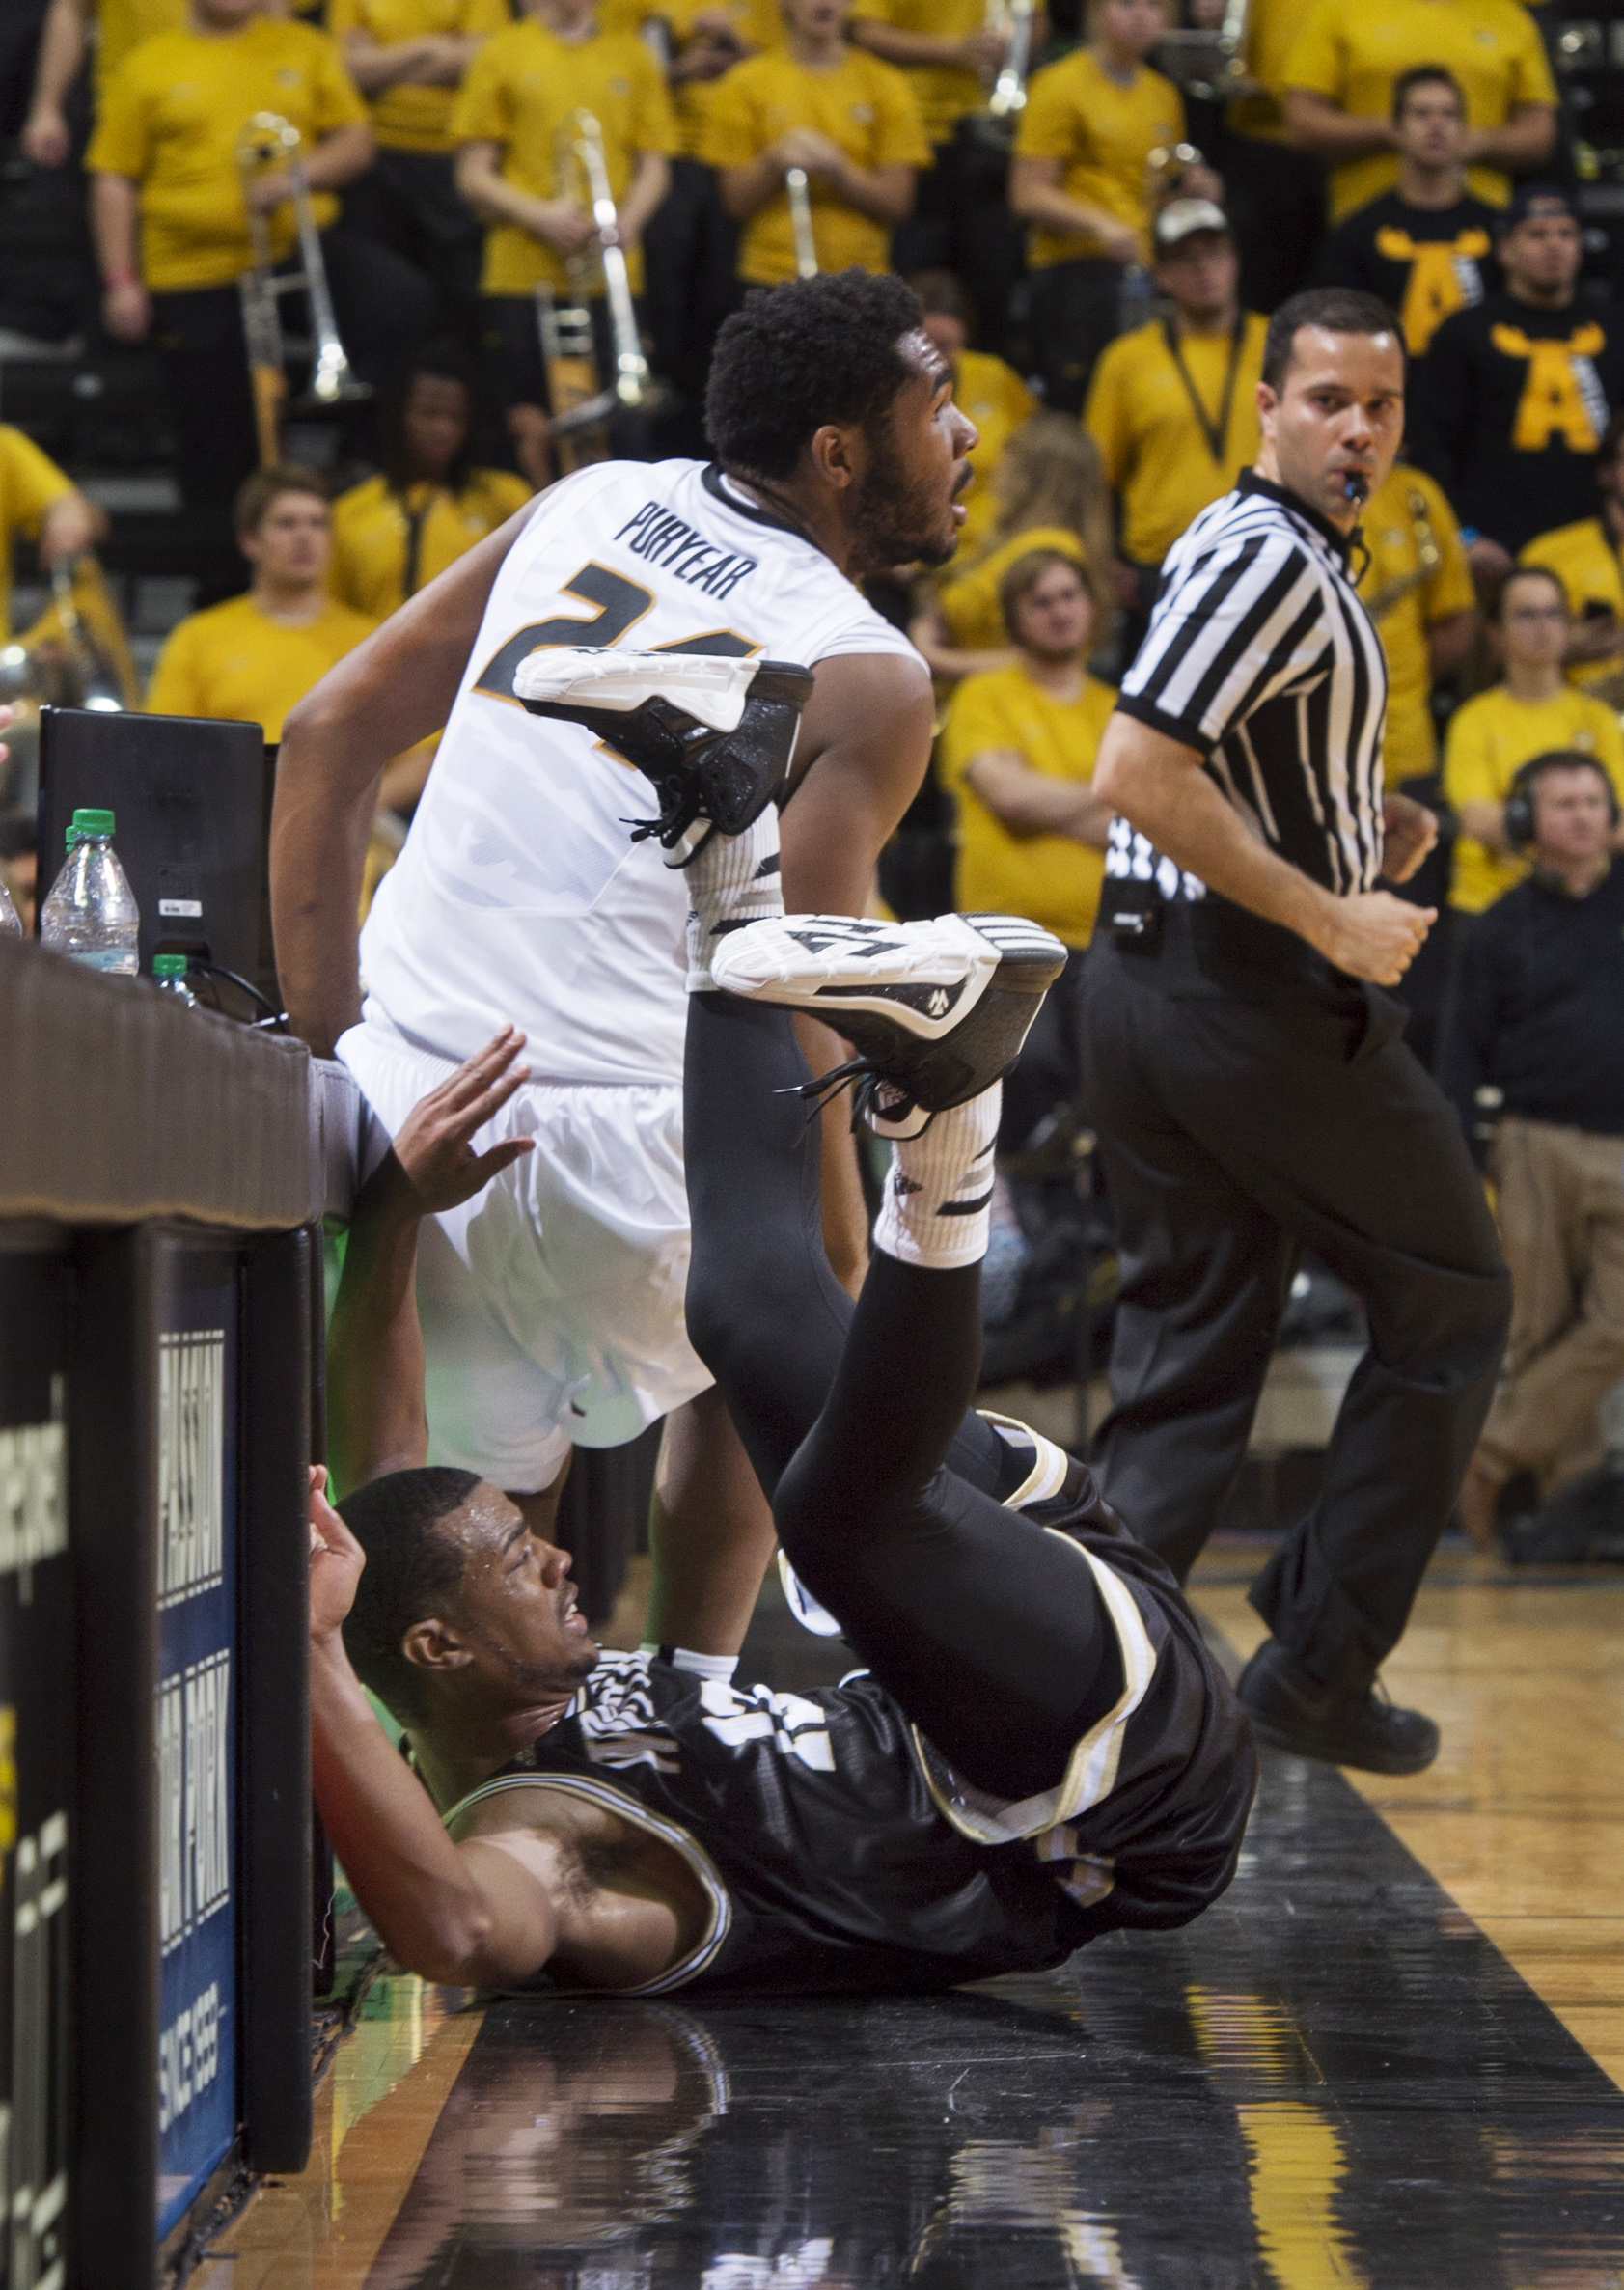 Wofford's Spencer Collins, bottom, falls out of bounds as he collides with Missouri's Kevin Puryear, top, as the scrambled for a loose ball during the first half of an NCAA college basketball game Friday, Nov. 13, 2015, in Columbia, Mo. (AP Photo/L.G. Pat